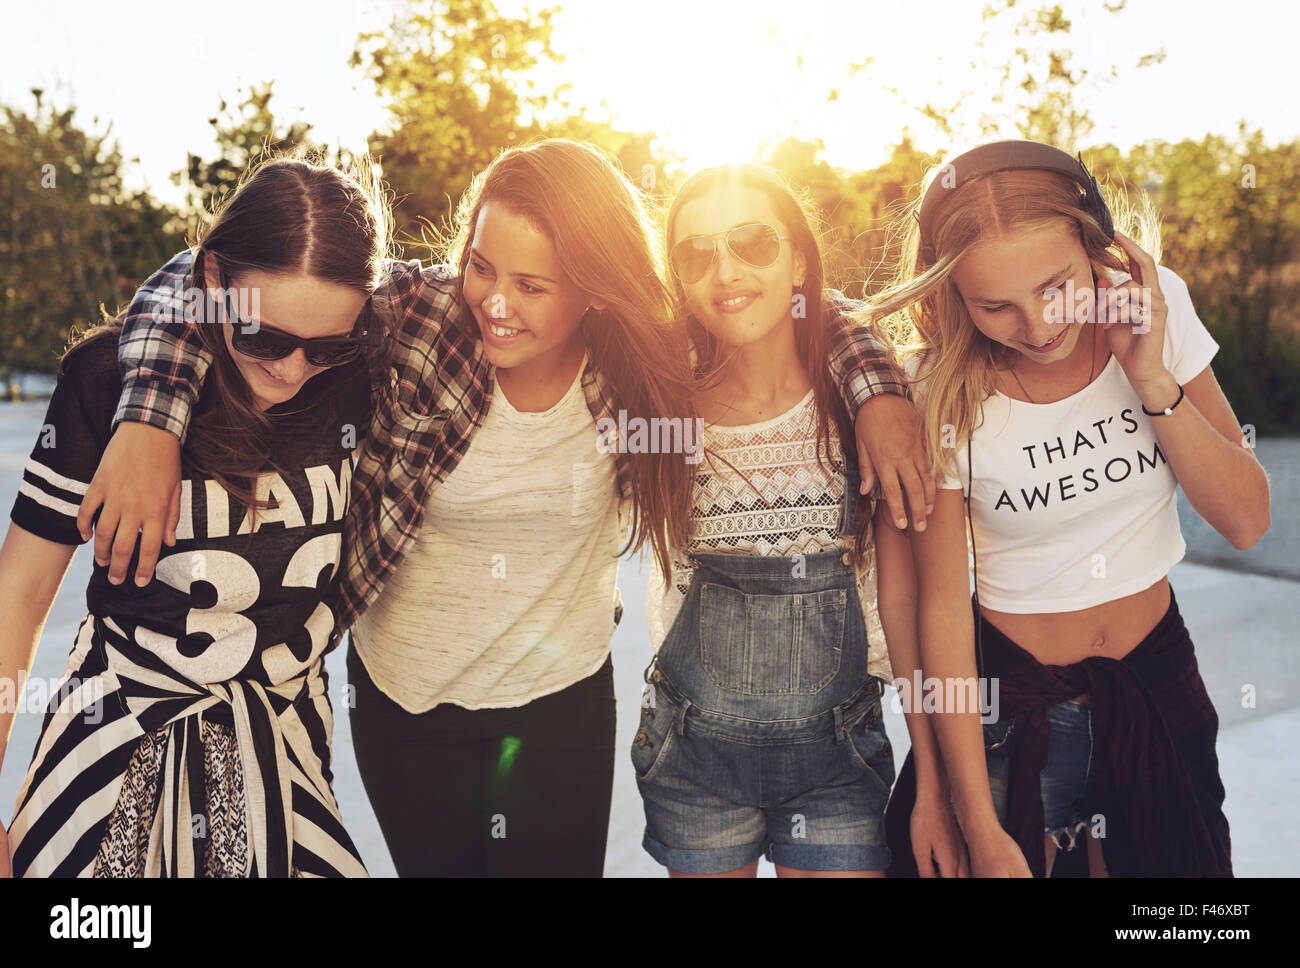 Group og teenage girls walking the streets and laughing - Stock Image